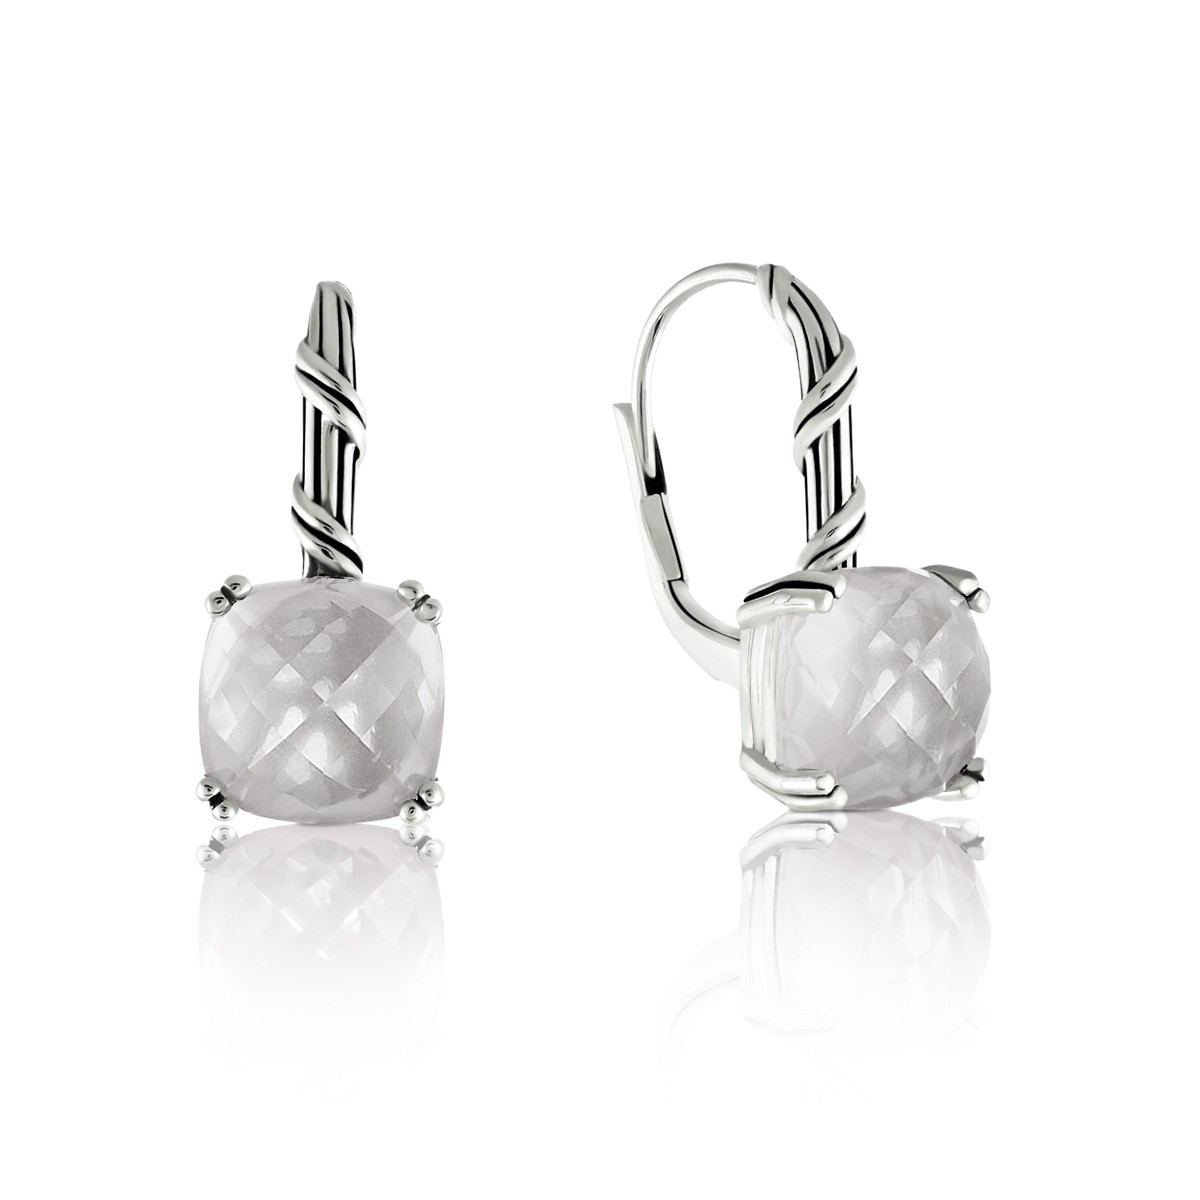 Peter Thomas Roth Ribbon And Reed Rock Crystal Drop Earrings In Sterling Silver